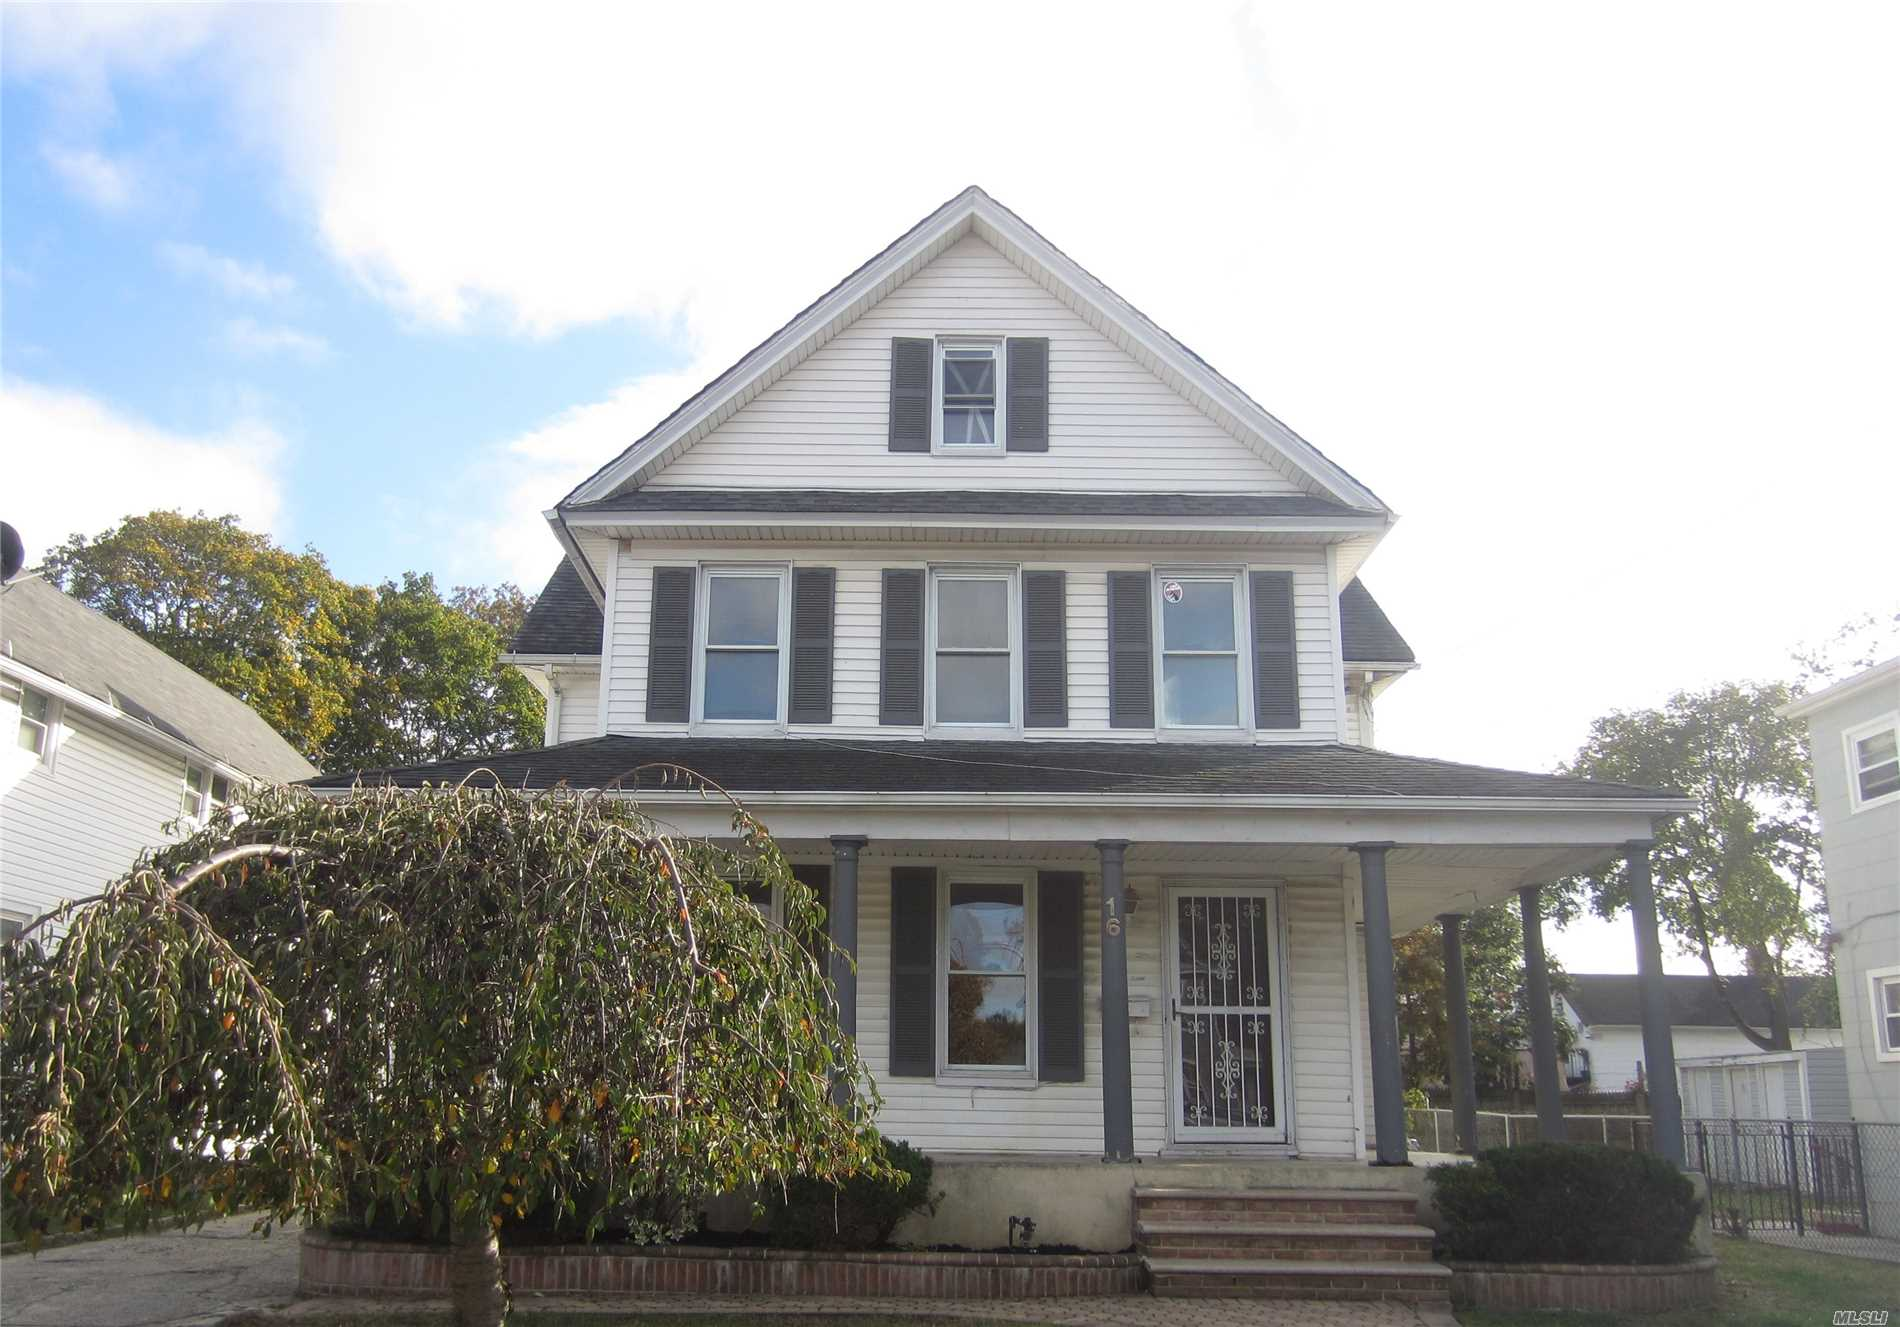 Charming And Spacious, Old Style Colonial, Featuring 5 Bedrooms, 2 Bathrooms, Partial Wrap-Around Porch, 2 Car Garage, Backyard And So Much More! Needs A Little Tlc.